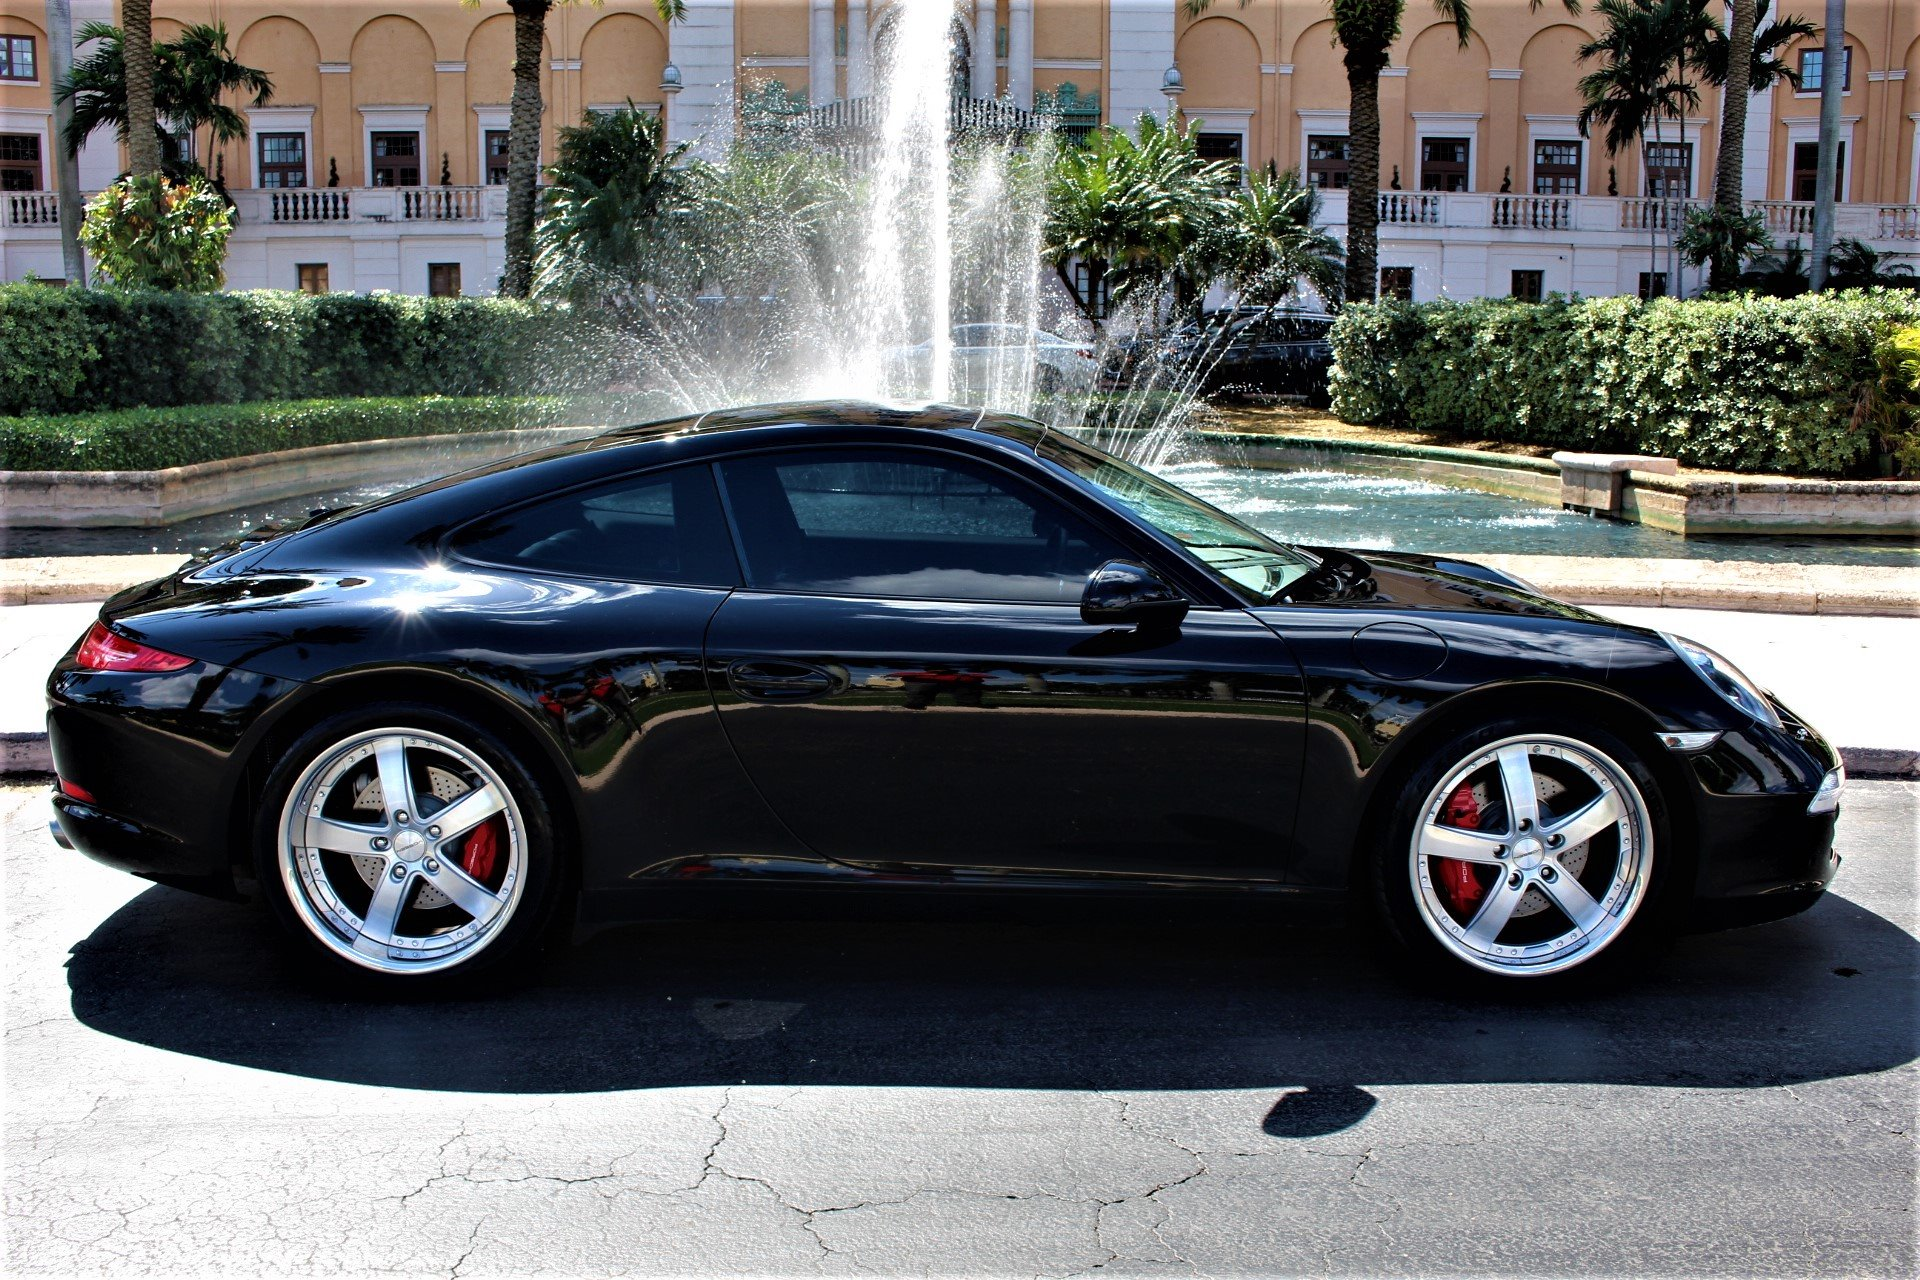 Used 2012 Porsche 911 Carrera S for sale Sold at The Gables Sports Cars in Miami FL 33146 1